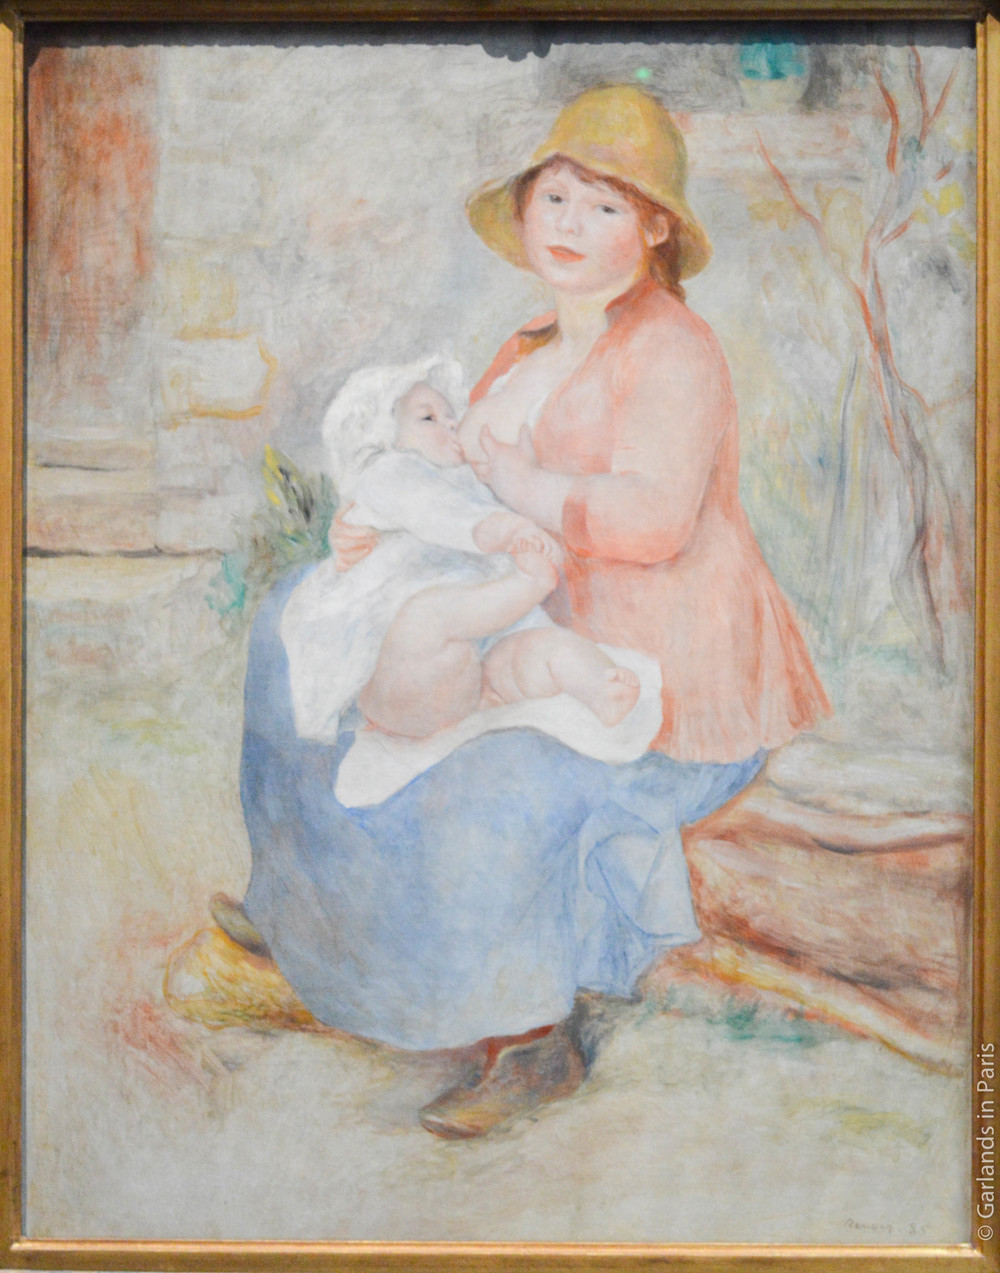 Mother breastfeeding, Musée d'Orsay